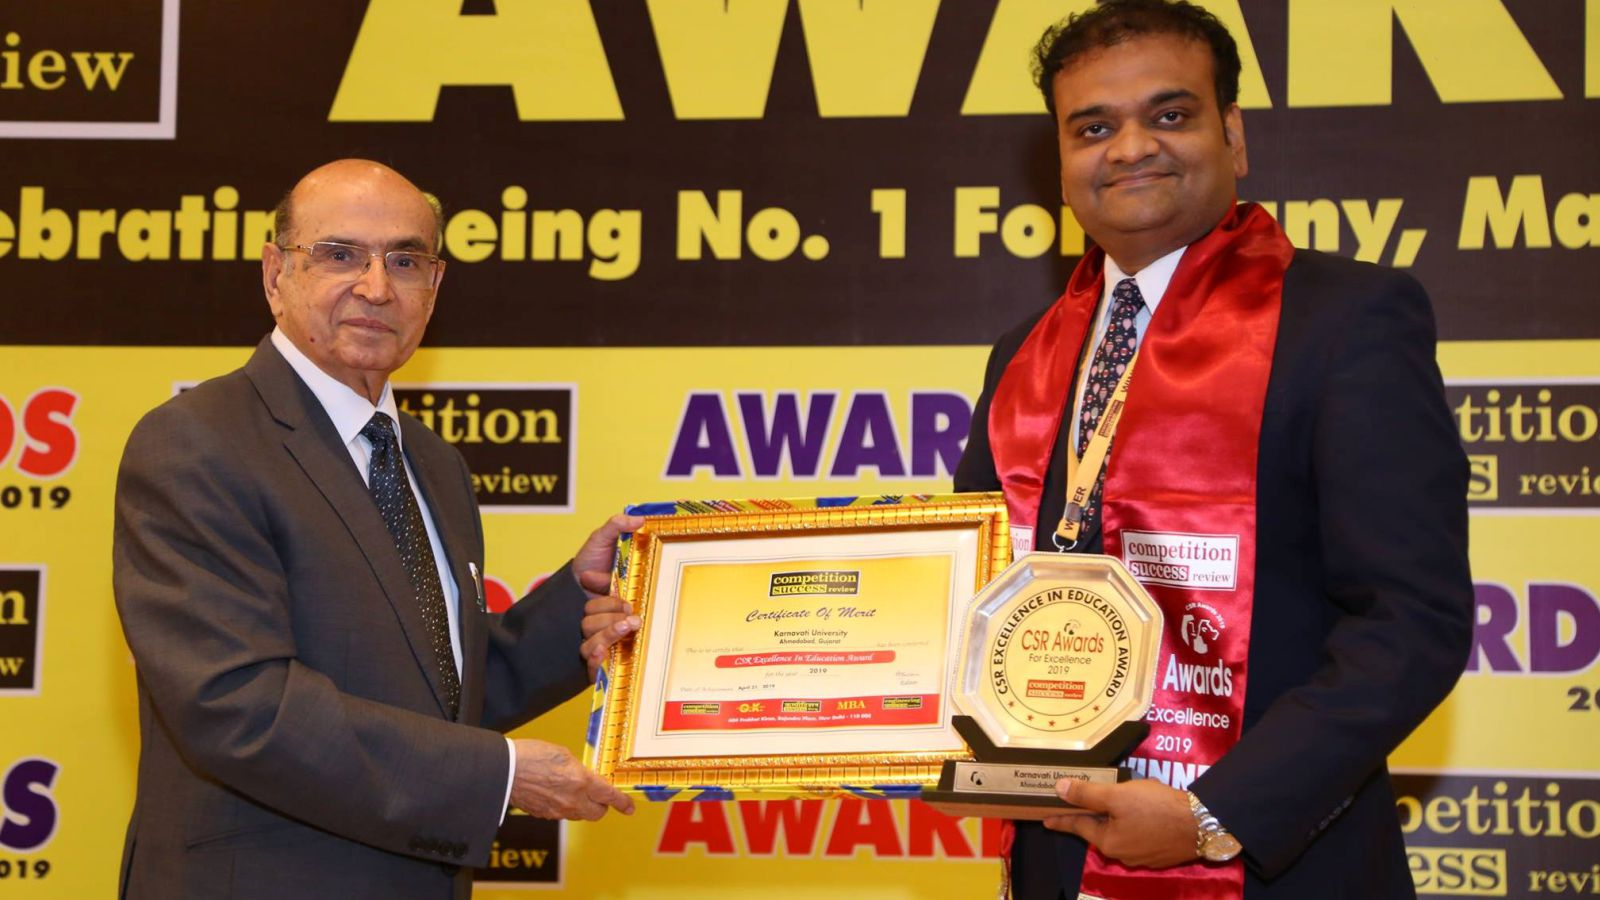 'Excellence in Education 2019' Award for KU Image